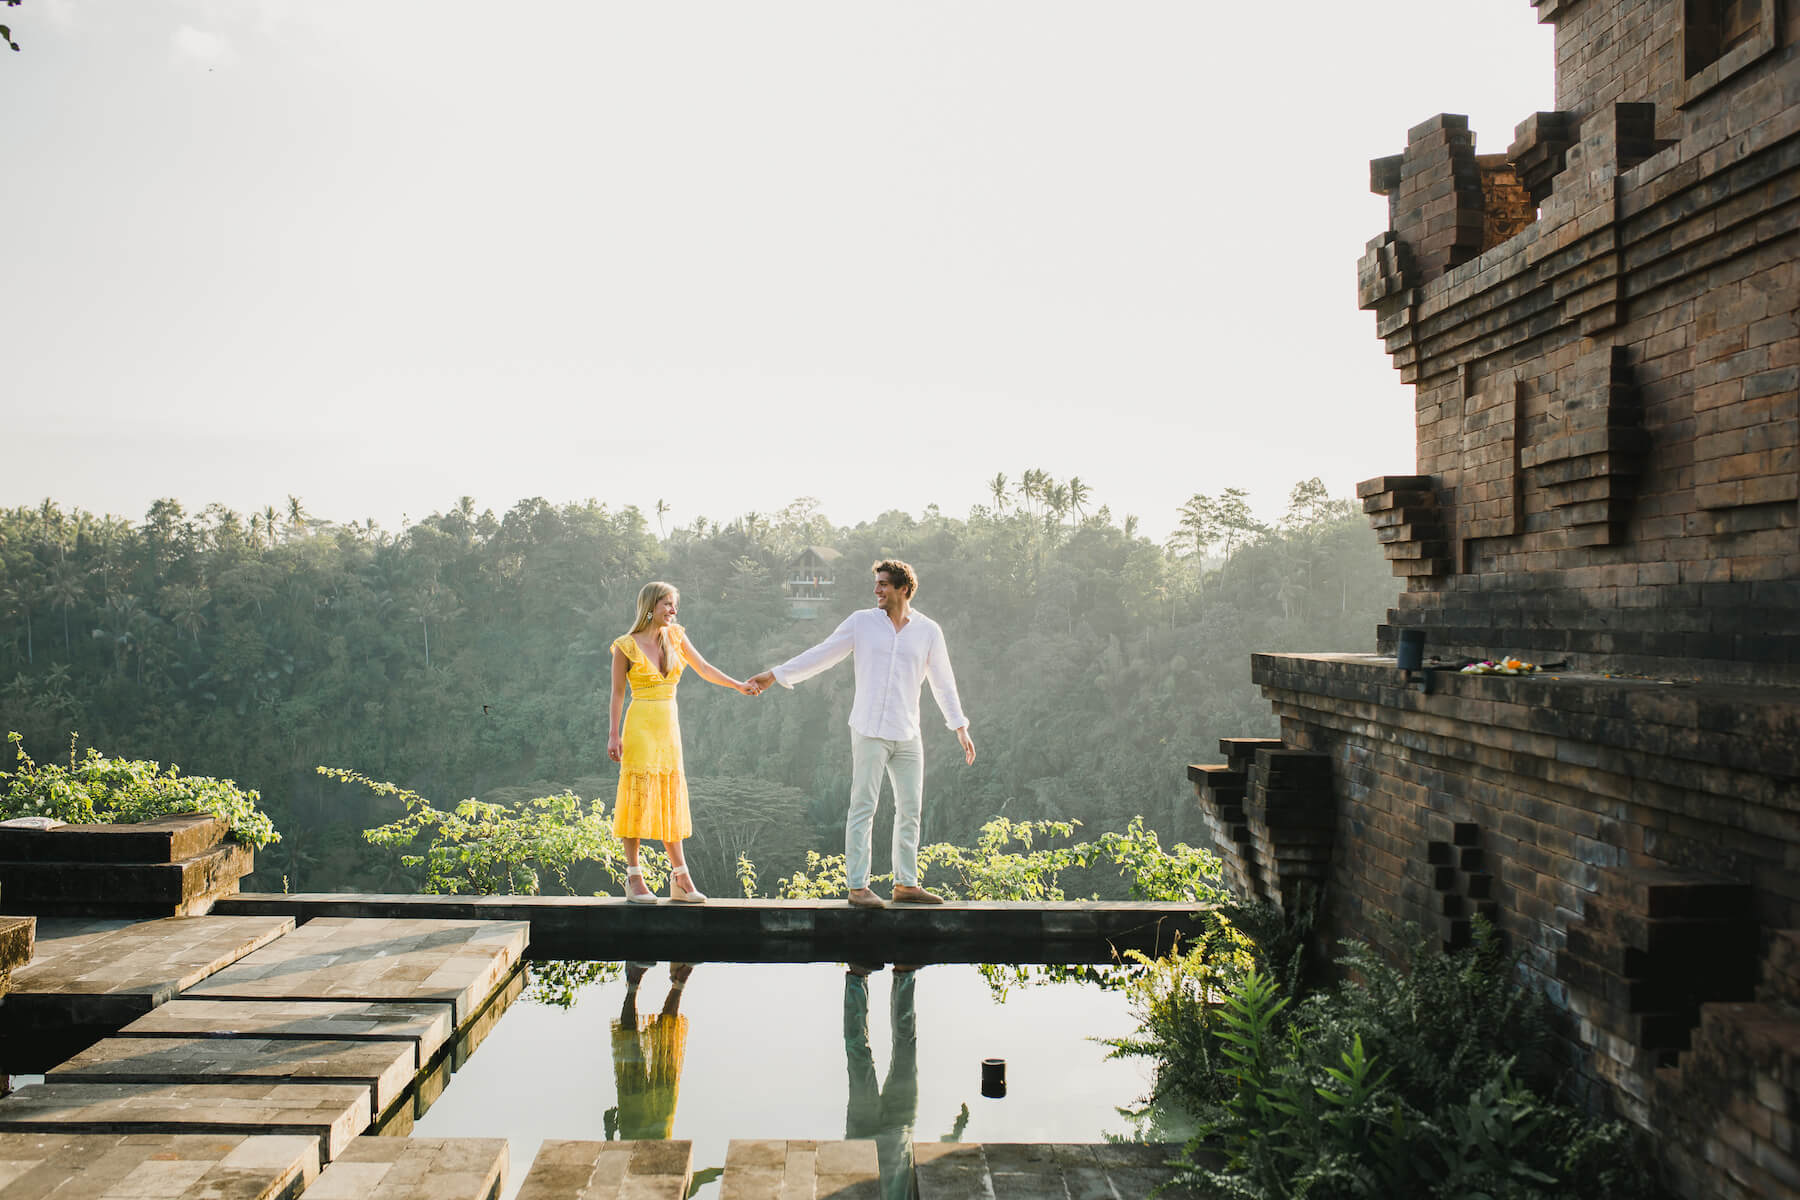 How To Convince Your Partner To Do A Flytographer Shoot